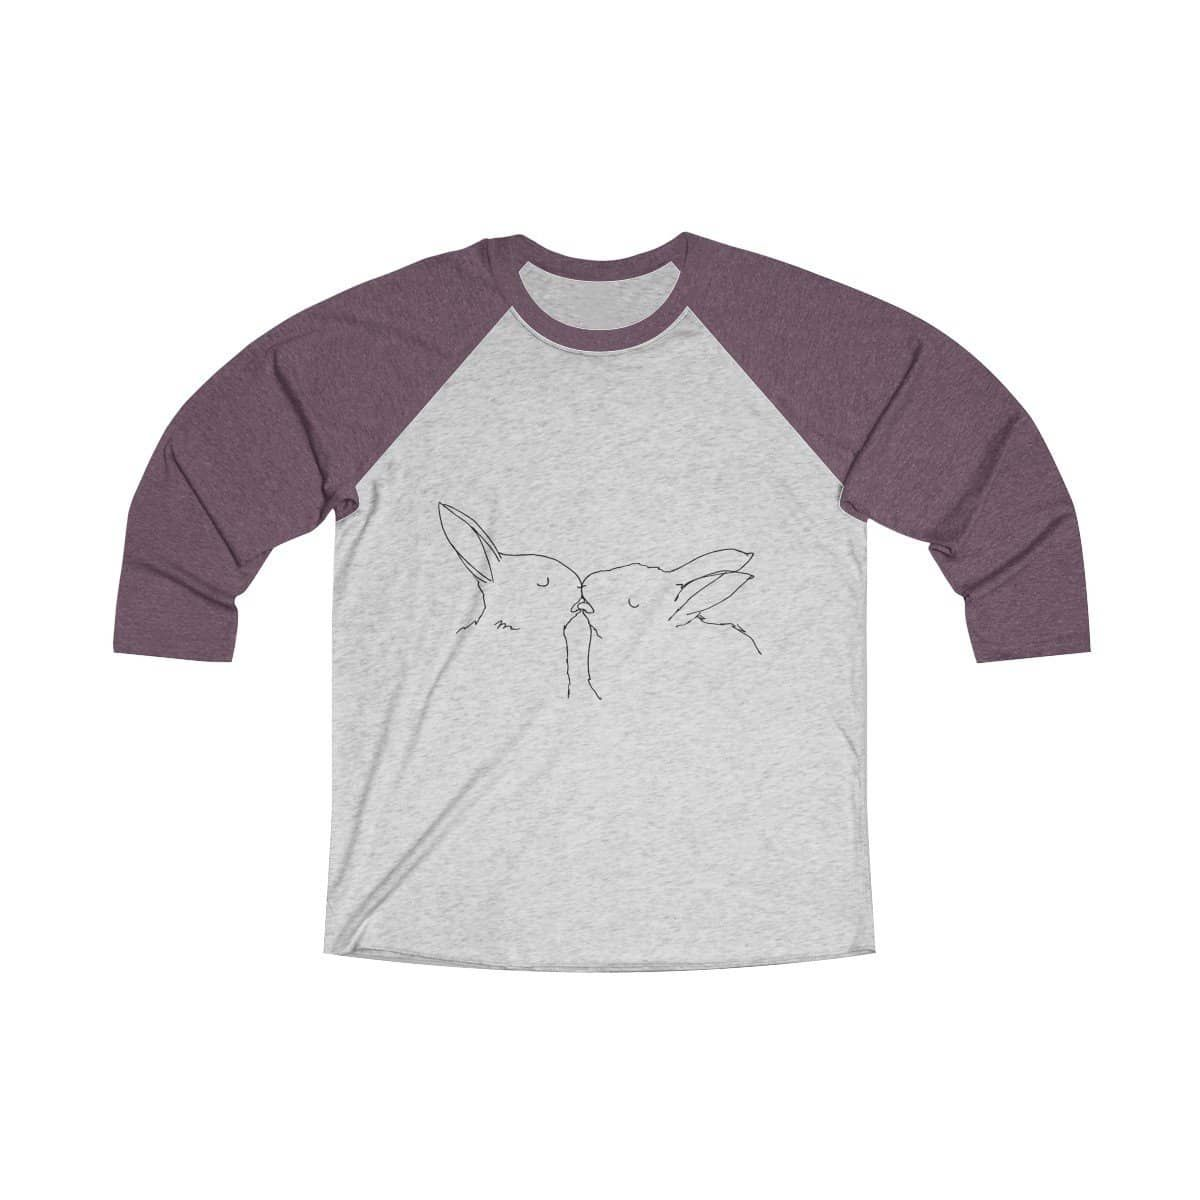 Tri-Blend 3/4 Raglan Tee by Visual artists Weisstub  This loose fit long sleeve unisex tee is perfect to score a home run on any field.  And an excellent quality print will let one do it with a style.  Quality print made in USA Free Shipping  .: Loose-fit .: 50% Polyester; 25% Soft cotton; 25% Rayon .: Light fabric .: Sewn in label .: Runs smaller than usual     XS S M L XL 2XL     Width, in 18 20 21 23 25 27   Length, in 28 29 30 31 32 33   Sleeve length, in 24 25 25 26 26 27